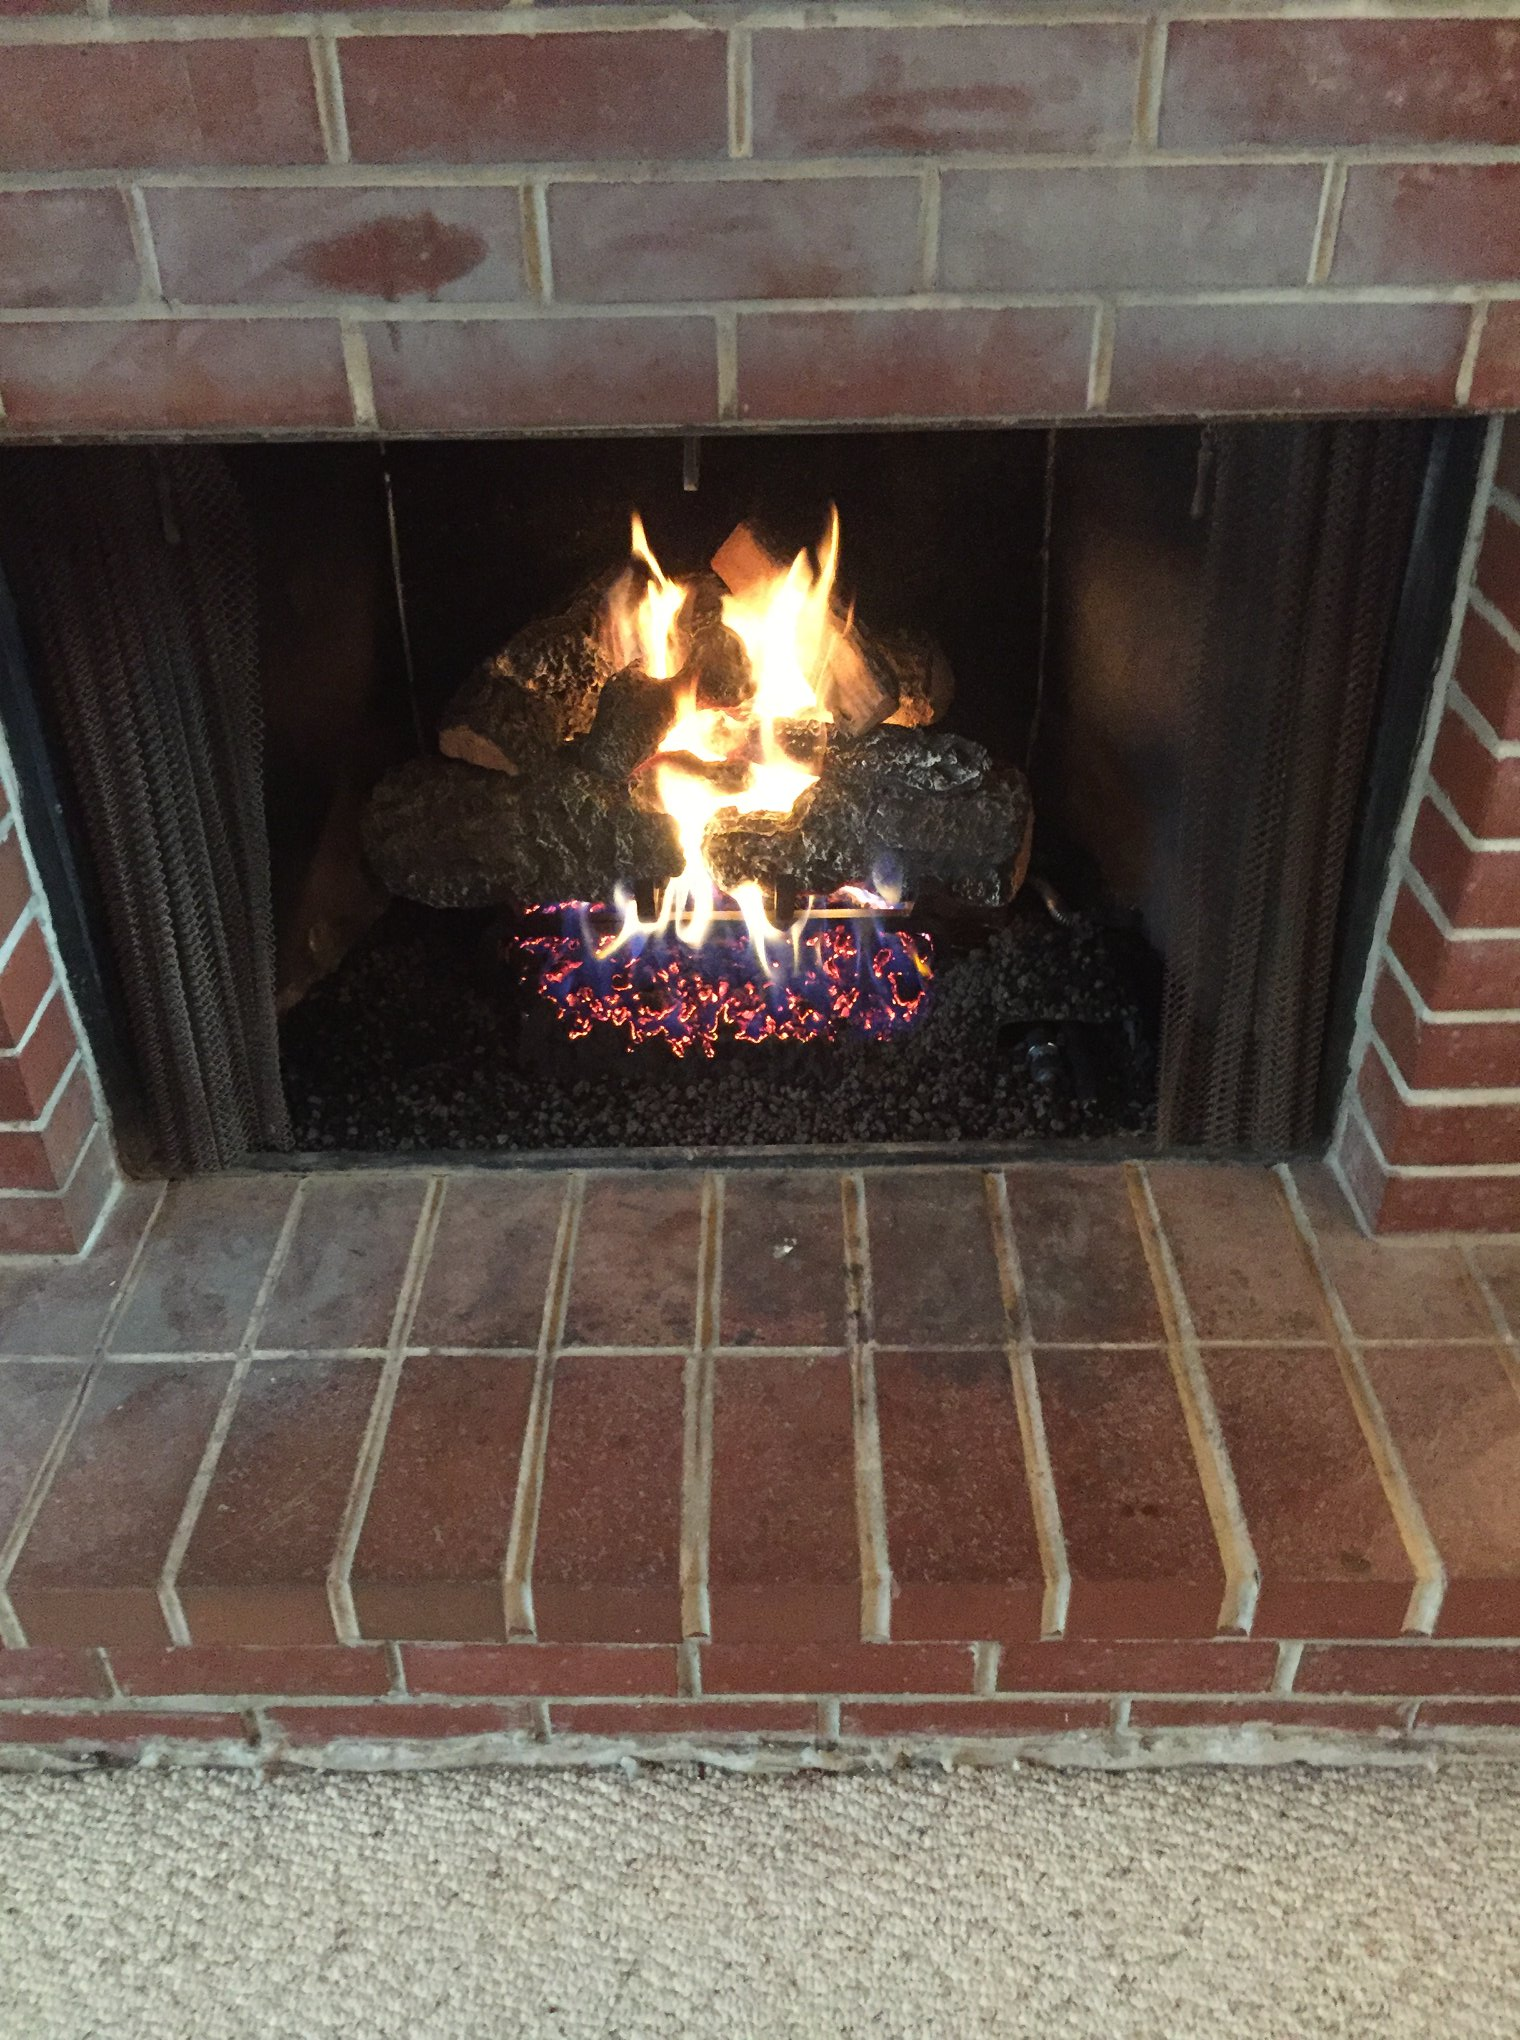 Hargrove radiant heat Cross Timber gas logs inside wood burning fireplace.